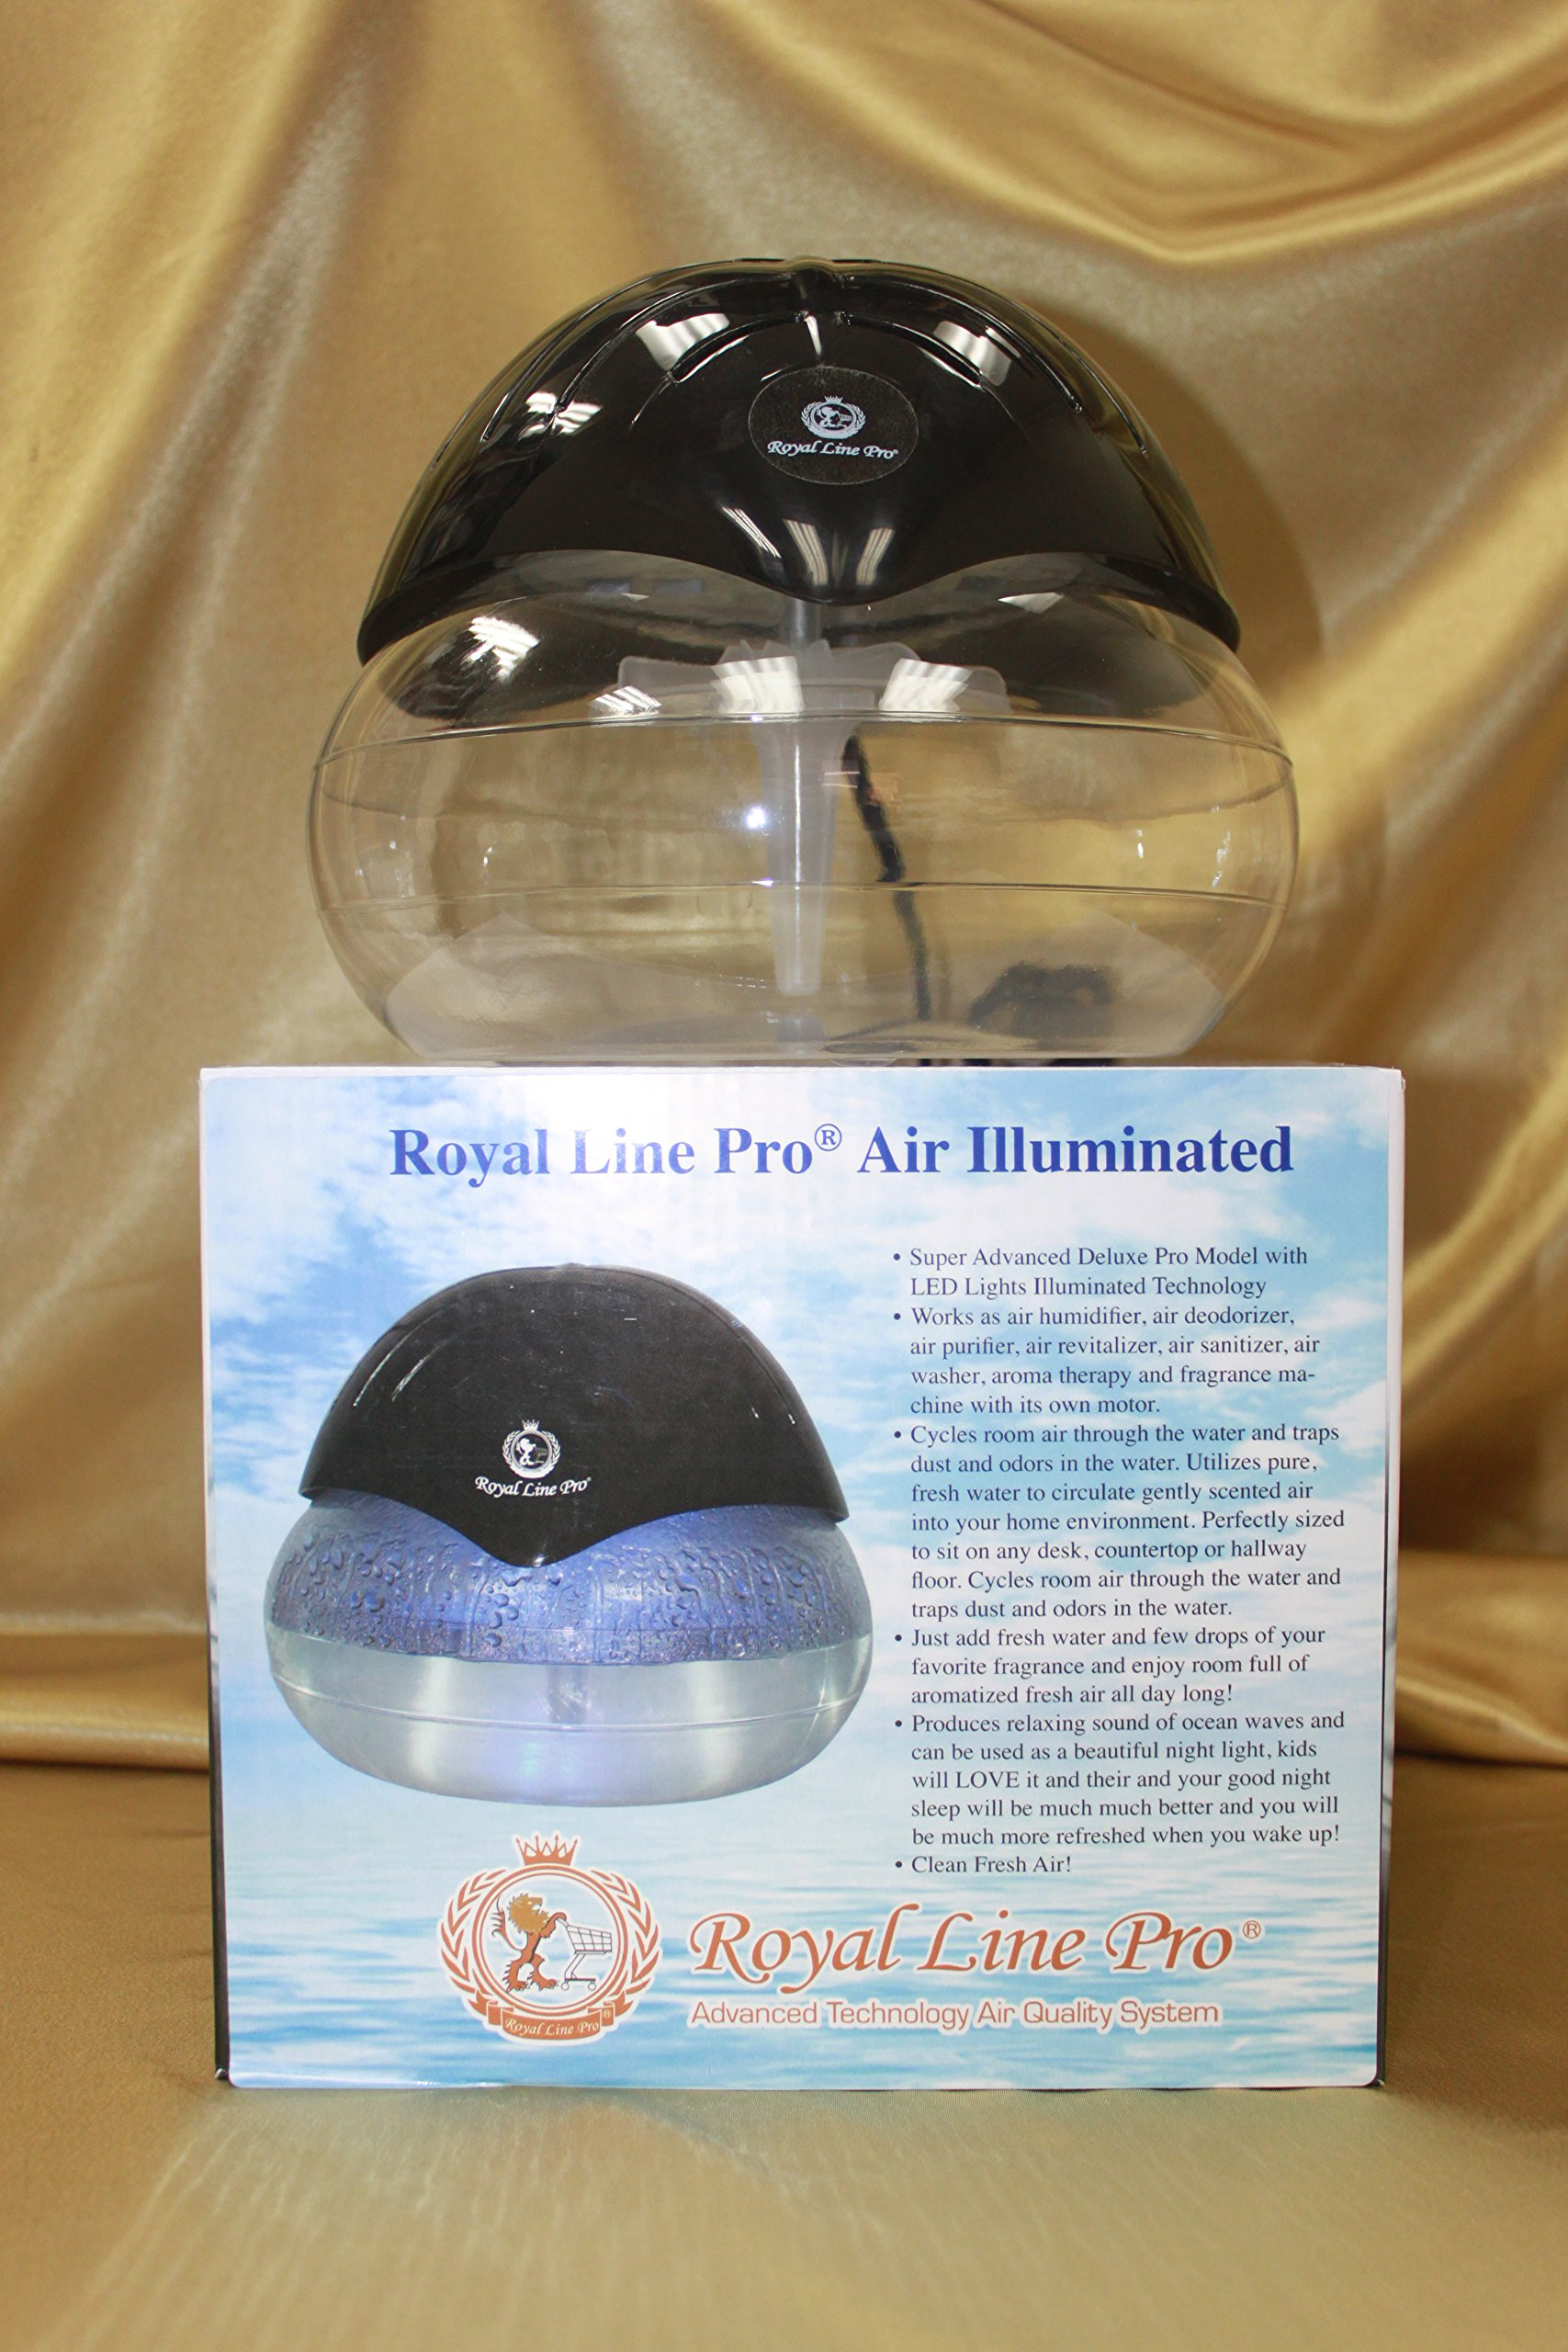 Royal Line Pro (R) Deluxe Illuminated LARGEST SIZE Air Purifier Humidifier Revitalizer Cleaner Fragrance Dispenser Aroma Therapy Machine! Beautiful BLACK with LED Lights! Pro Model! Largest Size in its class!!!